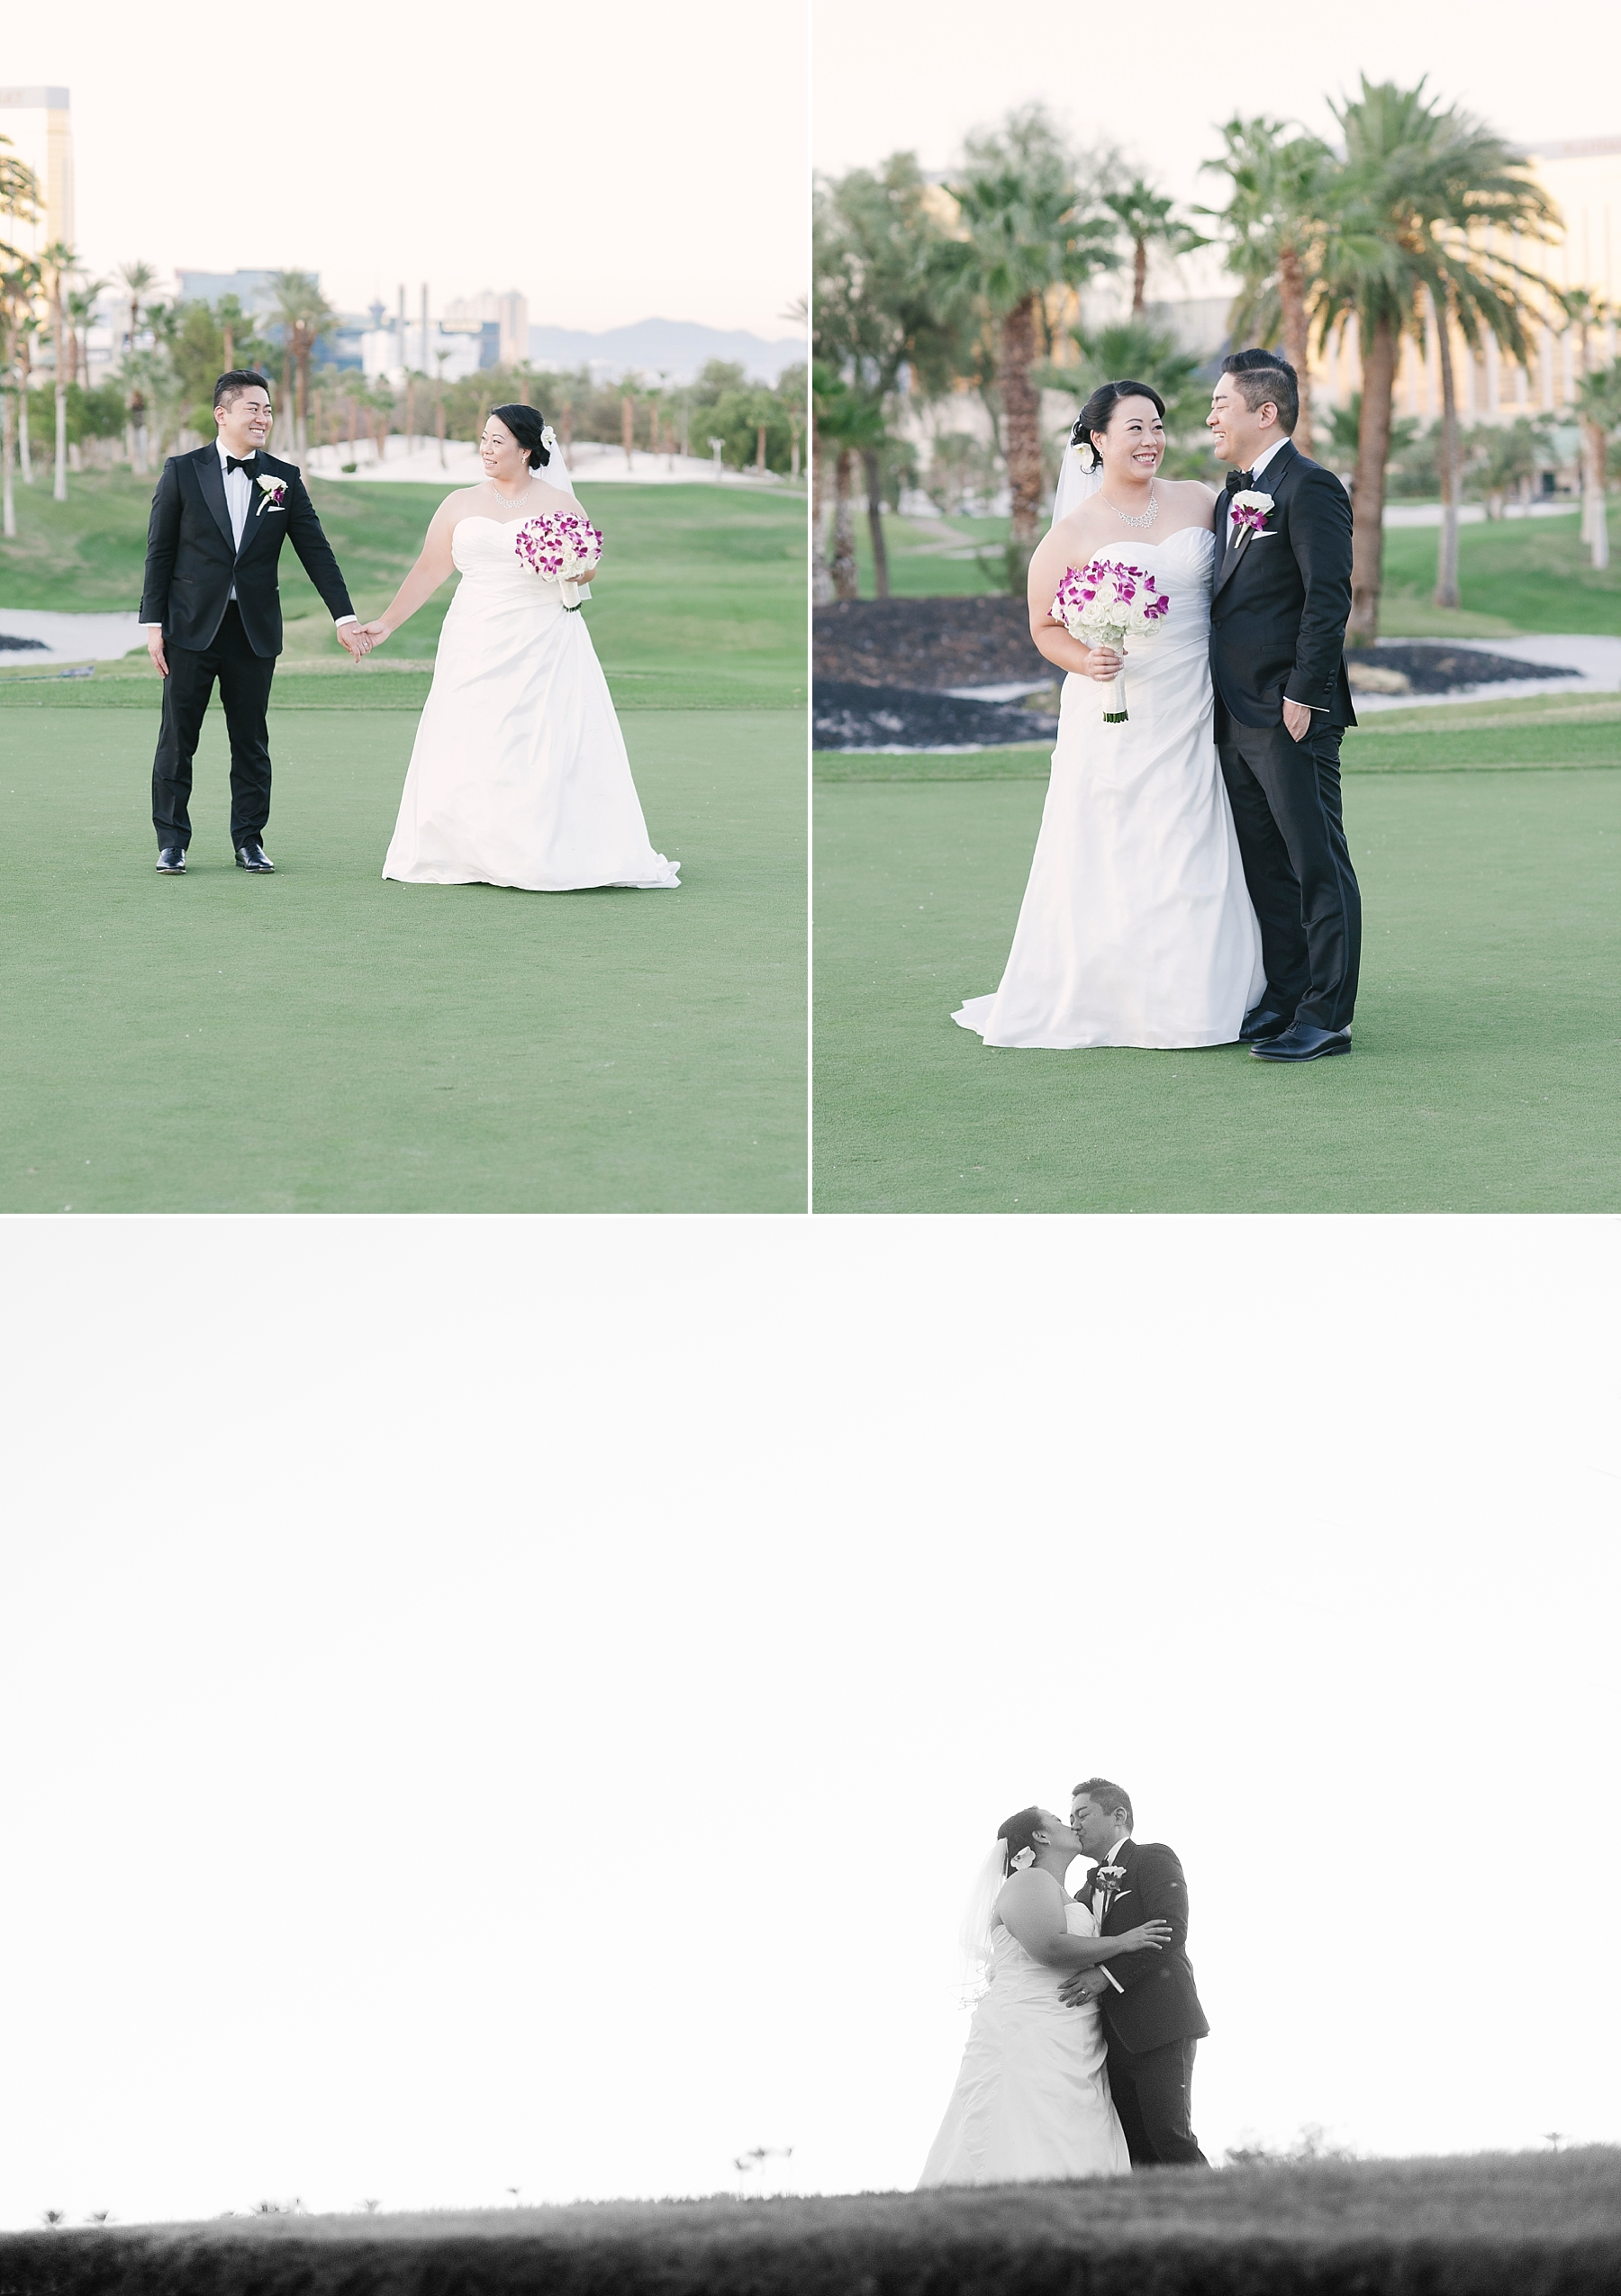 Cili_Golf_Club_Las_vegas_wedding_photography-26.jpg